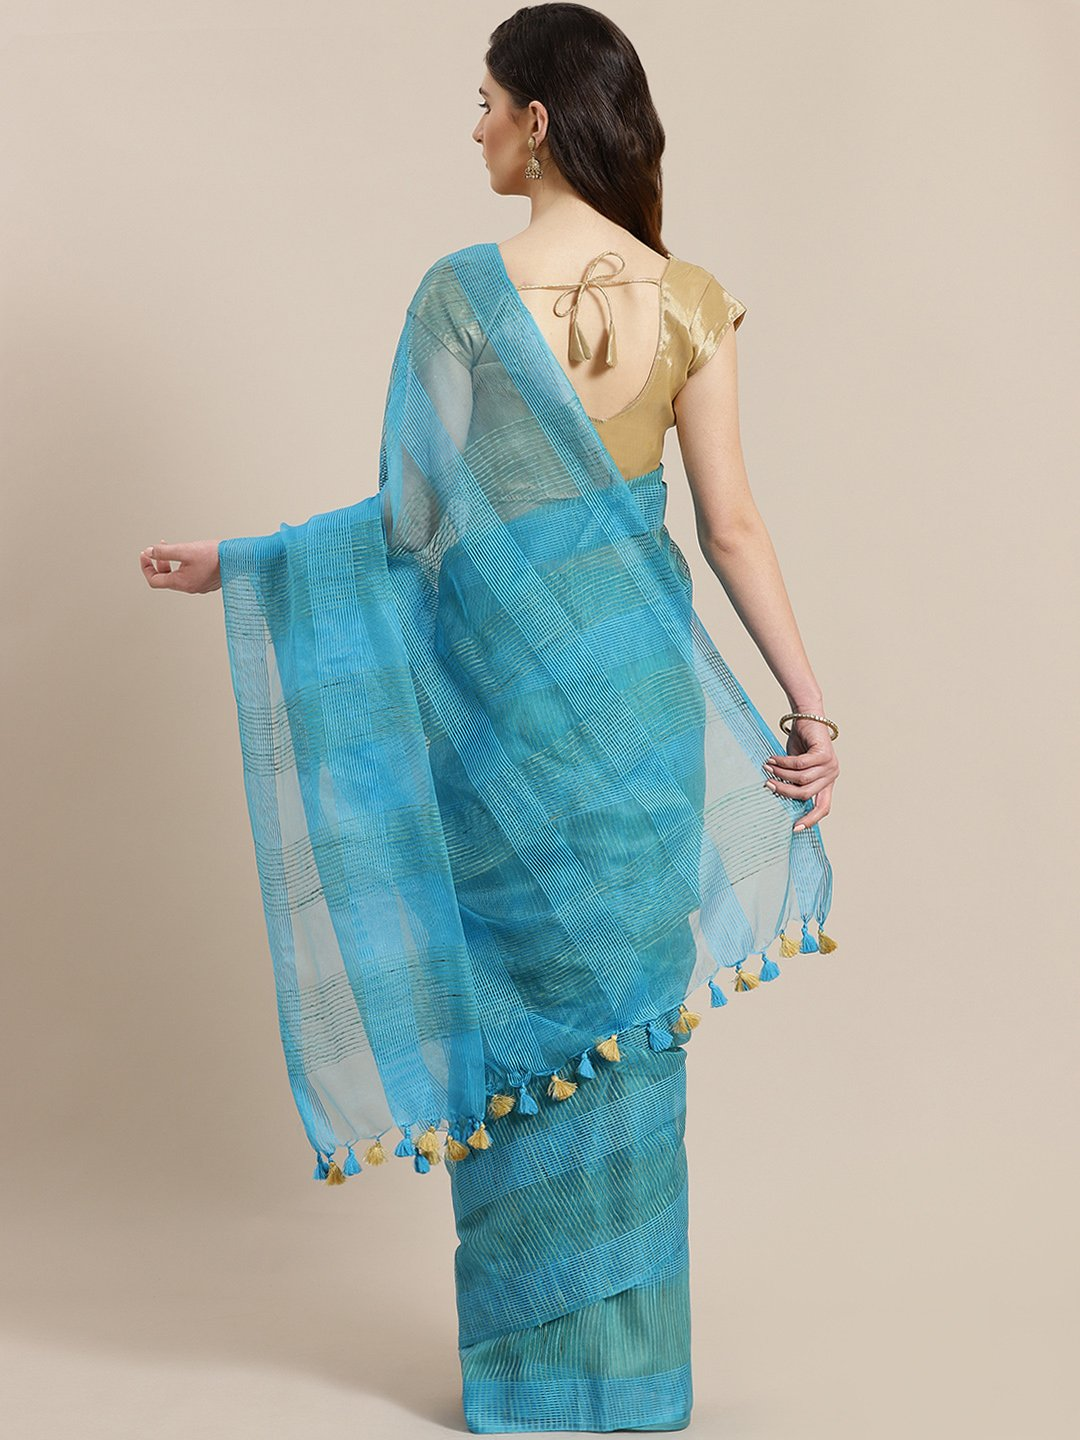 Blue Green Self-Checked Handwoven Saree-Saree-Kalakari India-ALBGSA0011-Hand Crafted Sustainable Fabrics, Kota Silk, Linen, Sarees, Traditional Weave-[Linen,Ethnic,wear,Fashionista,Handloom,Handicraft,Indigo,blockprint,block,print,Cotton,Chanderi,Blue, latest,classy,party,bollywood,trendy,summer,style,traditional,formal,elegant,unique,style,hand,block,print, dabu,booti,gift,present,glamorous,affordable,collectible,Sari,Saree,printed, holi, Diwali, birthday, anniversary, sustainable, organic, sca